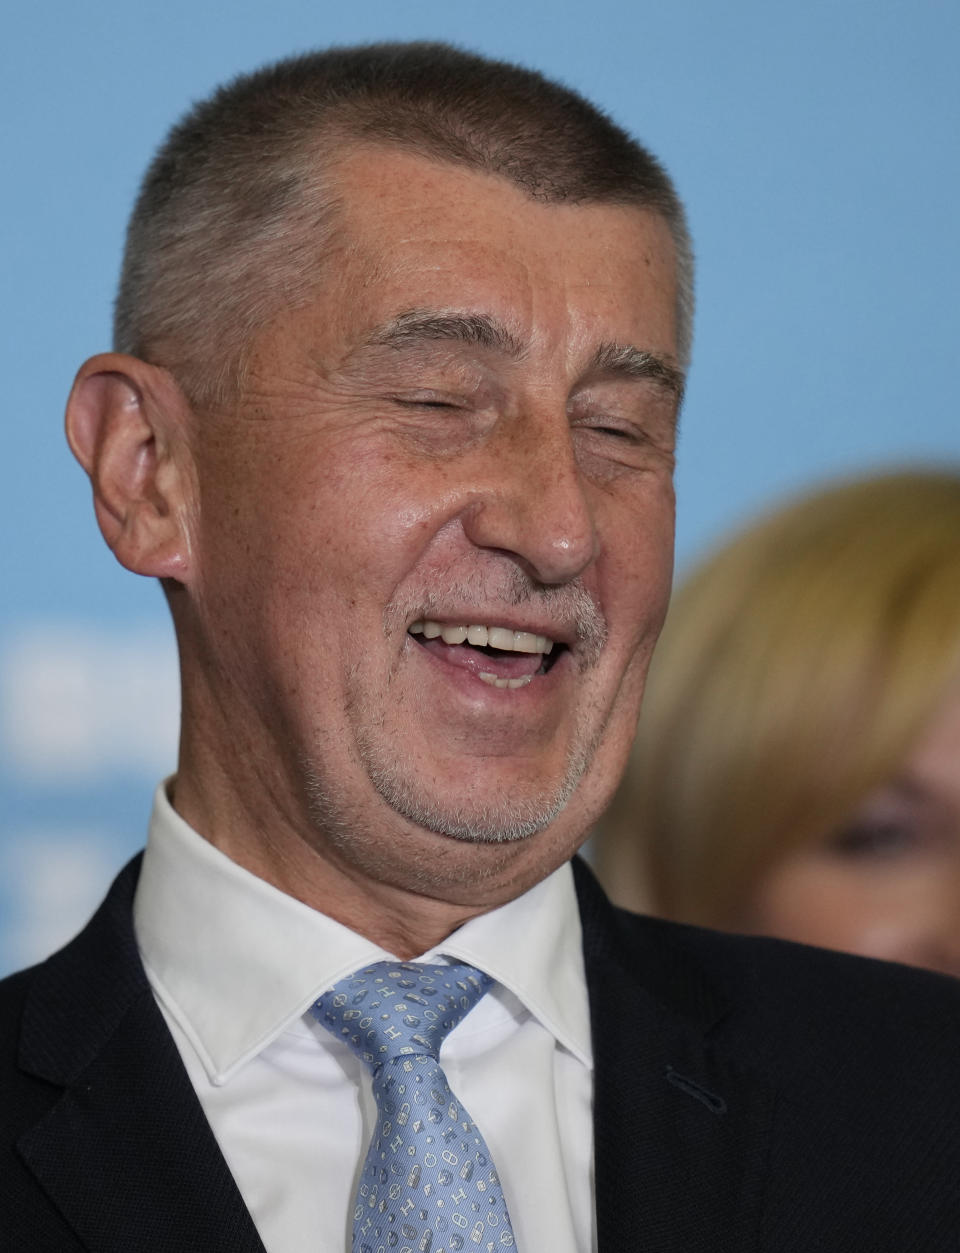 Czech Republic's Prime Minister and leader of centrist ANO (YES) movement Andrej Babis reacts as he addresses the media after most of the votes were counted in the parliamentary elections, Prague, Czech Republic, Saturday, Oct. 9, 2021. Prime Minister Andrej Babis's centrist party has narrowly lost the Czech Republic's parliamentary election, a surprise development that could mean the end of the populist billionaire's reign in power. With the votes from 99.7% of the ballot stations counted, the Czech Statistics Office said Together, a liberal-conservative three-party coalition, captured 27.7% of the vote, beating Babis's ANO (Yes) party, which won 27.2%. (AP Photo/Petr David Josek)